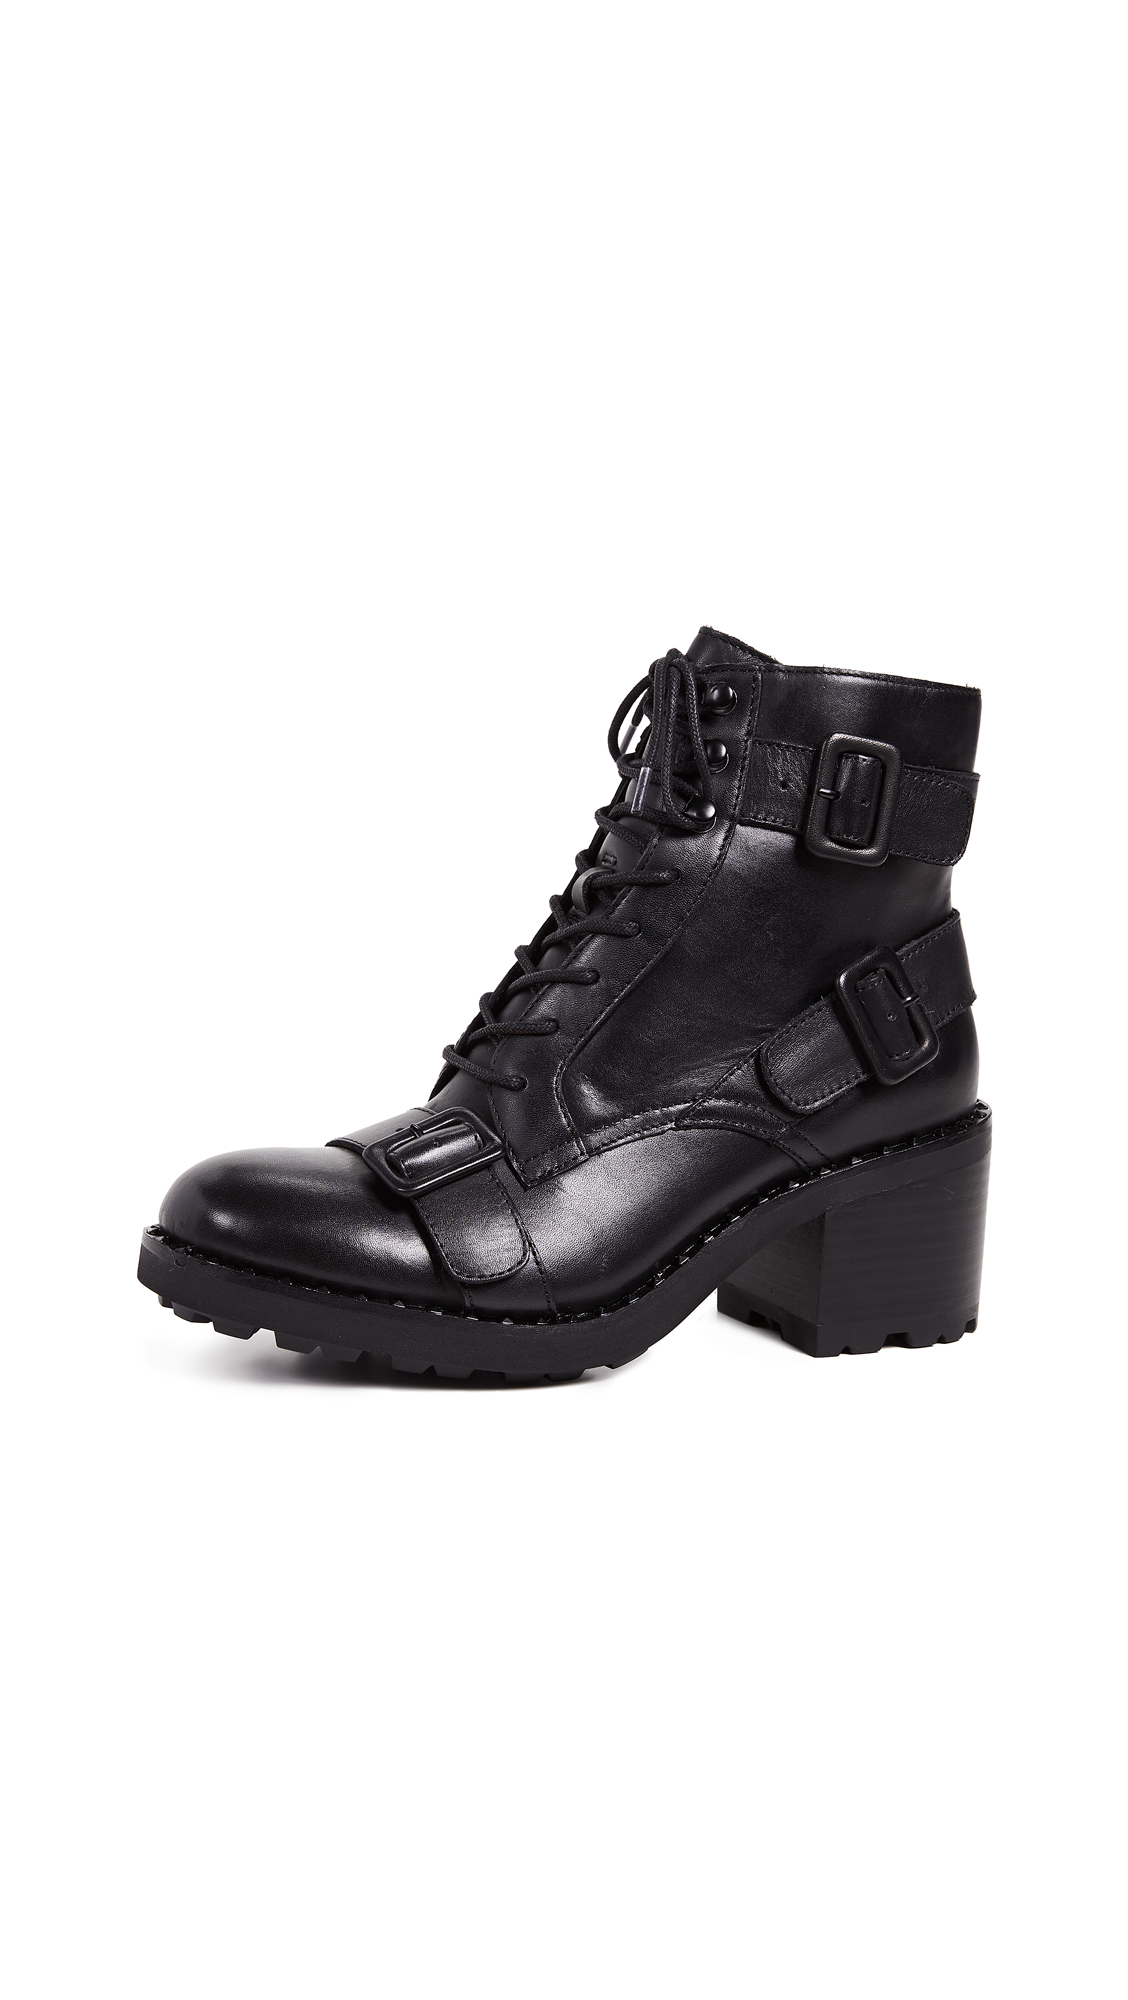 Ash Xeth Buckle Boots - Black